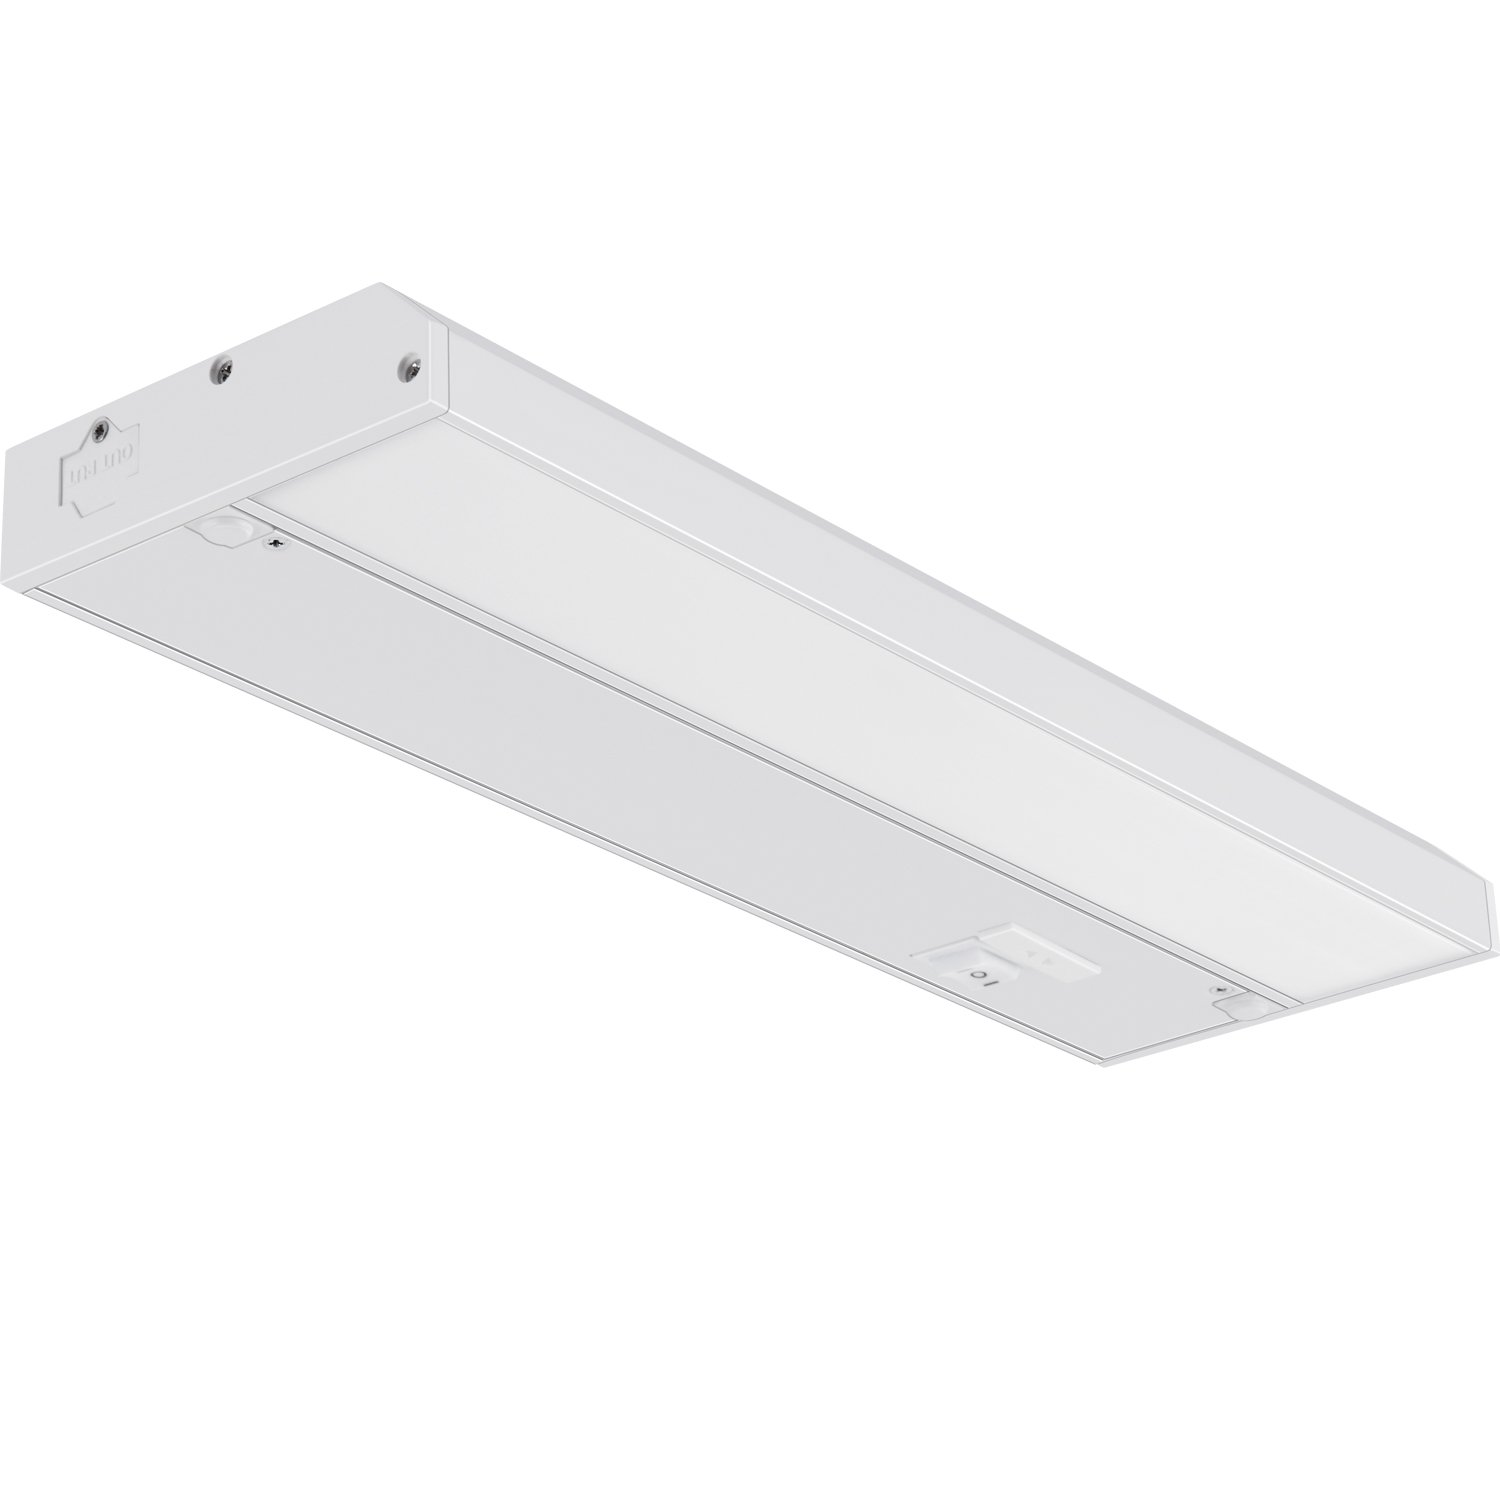 GetInLight 3 Color Levels Dimmable LED Under Cabinet Lighting with ETL Listed, Warm White (2700K), Soft White (3000K), Bright White (4000K), White Finished, ...